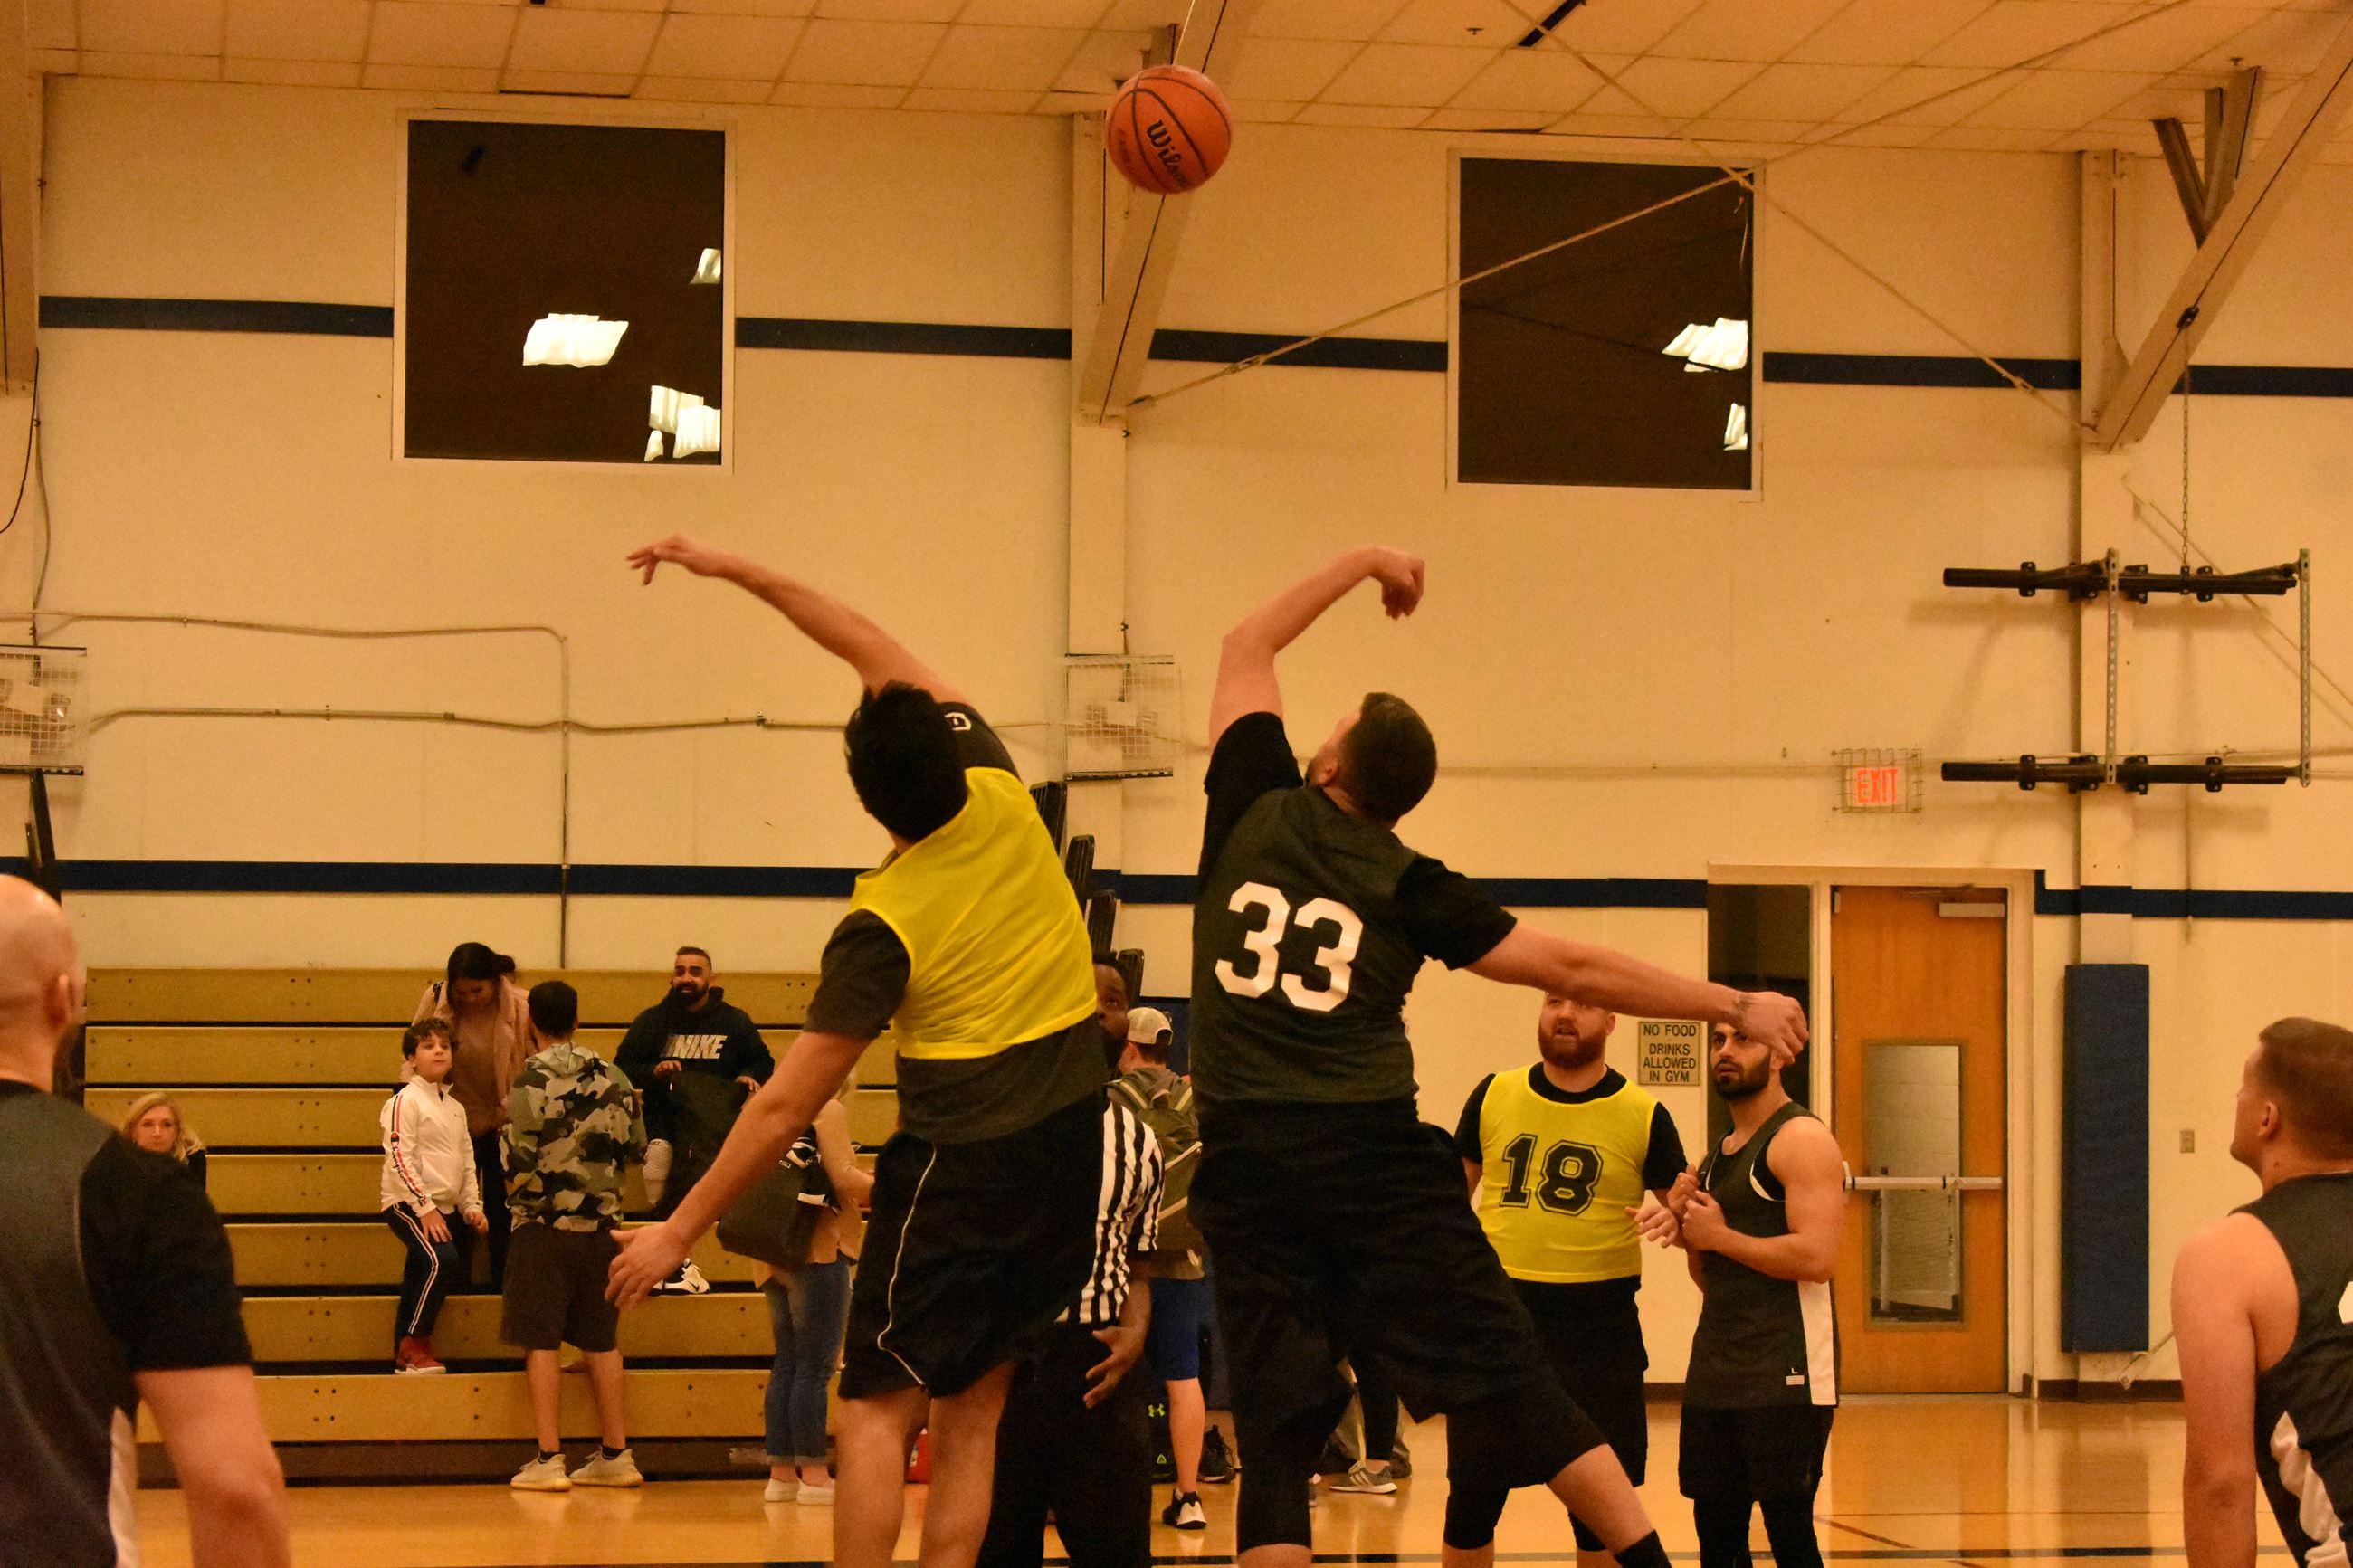 Game Two Tip Off - Bedford Adult Basketball League